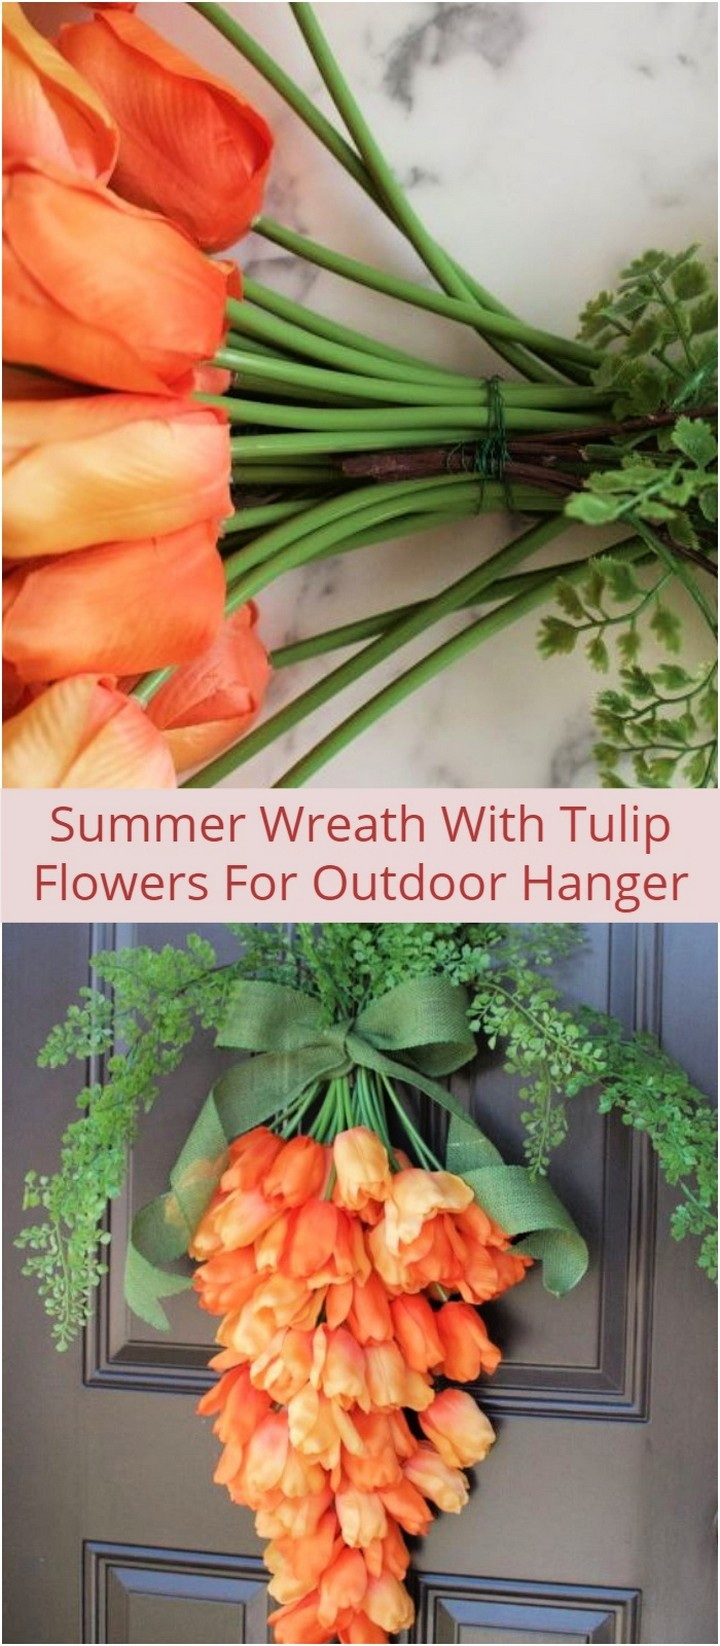 Summer Wreath With Tulip Flowers For Outdoor Hanger